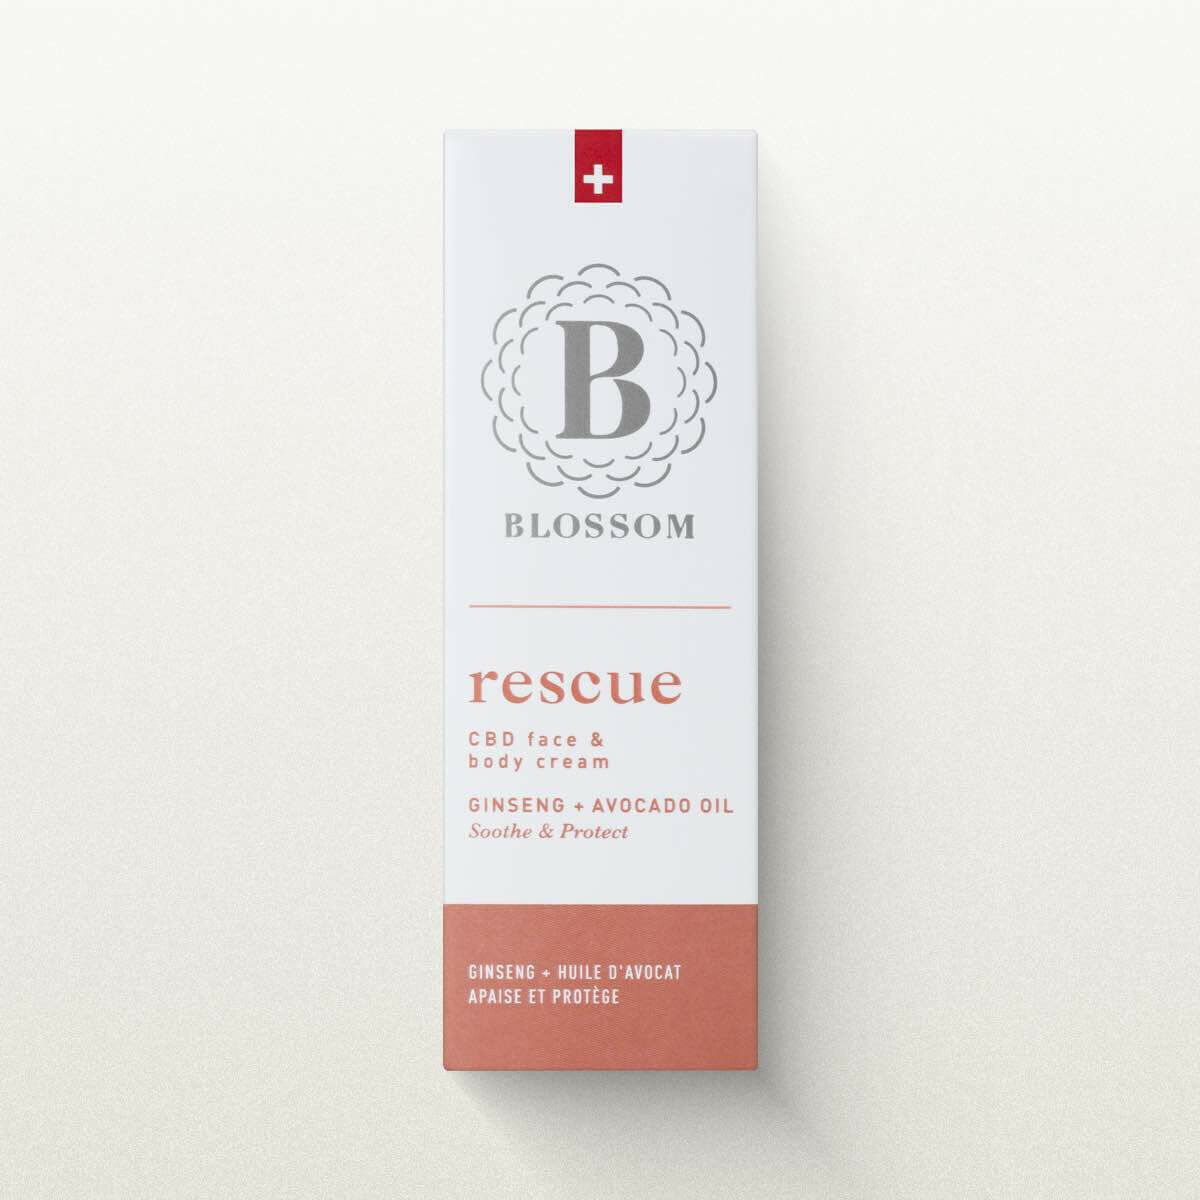 Blossom - Rescue face & body cream CBD